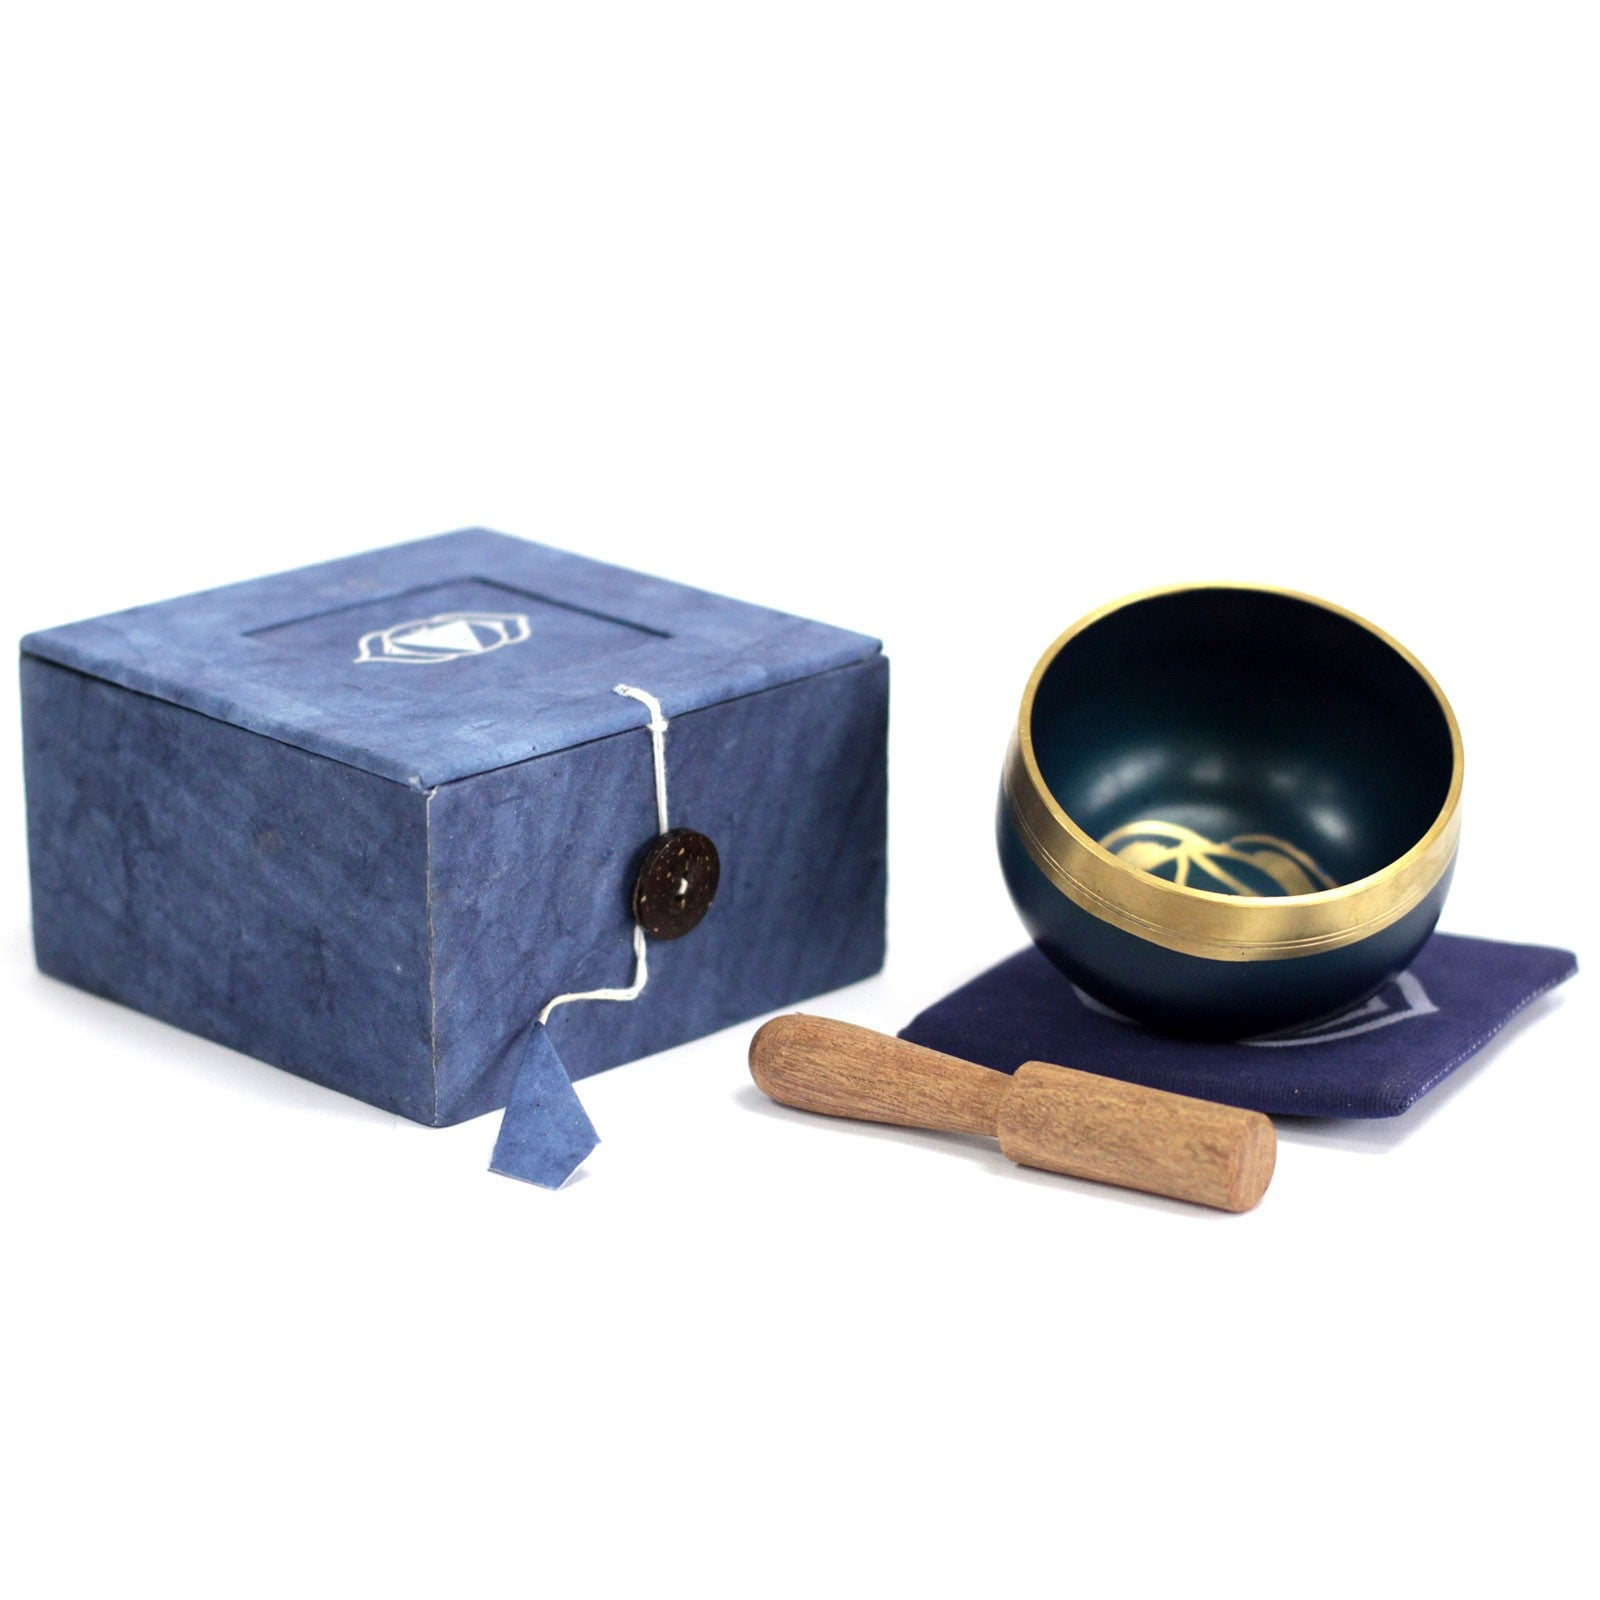 Chakra Singing Bowl - Third Eye, Musical Instrument & Orchestra Accessories by Gifts24-7